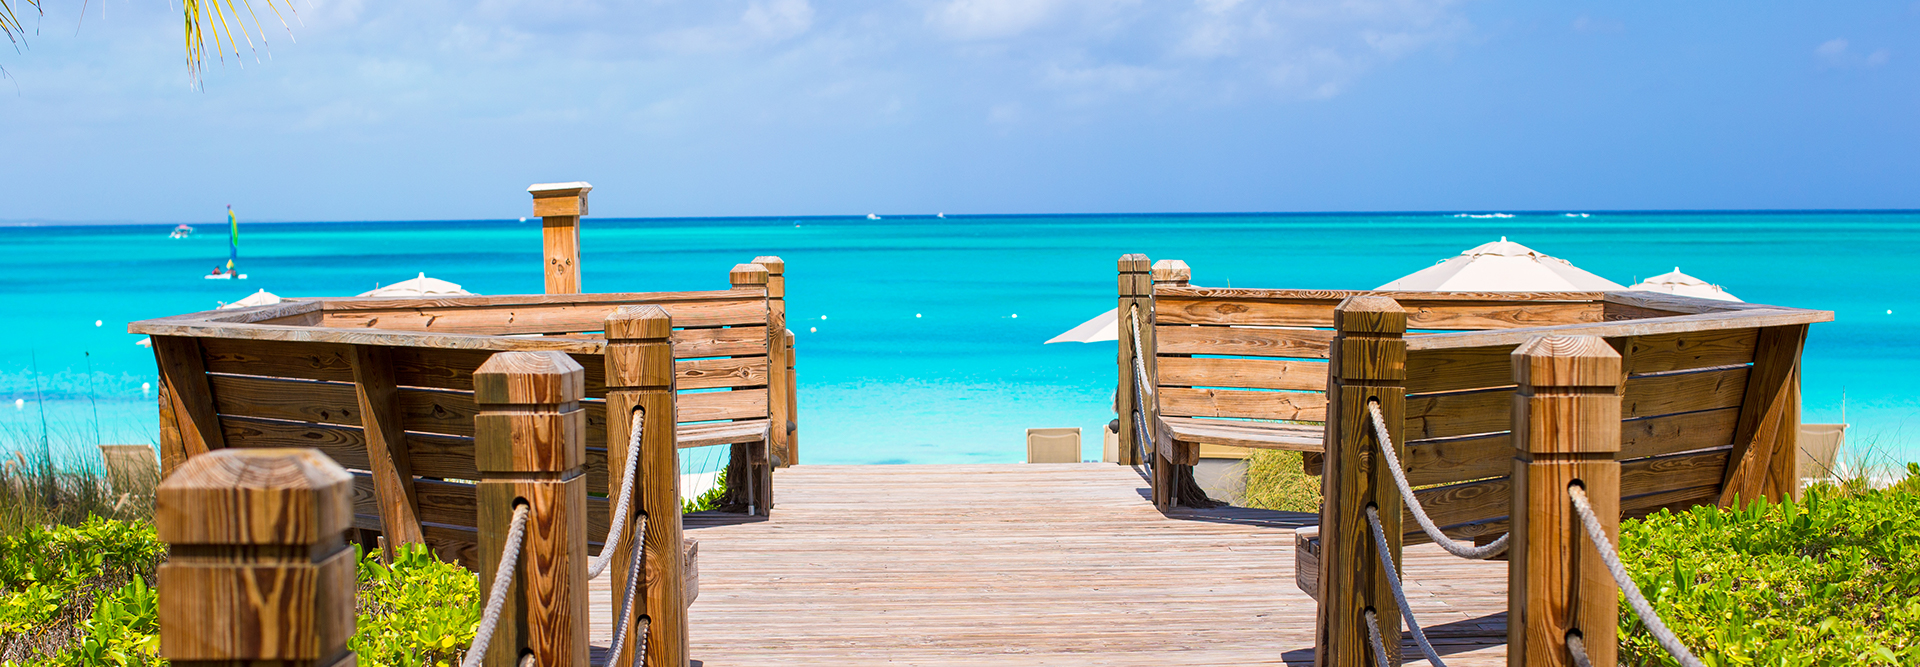 Providenciales Island, Turks and Caicos